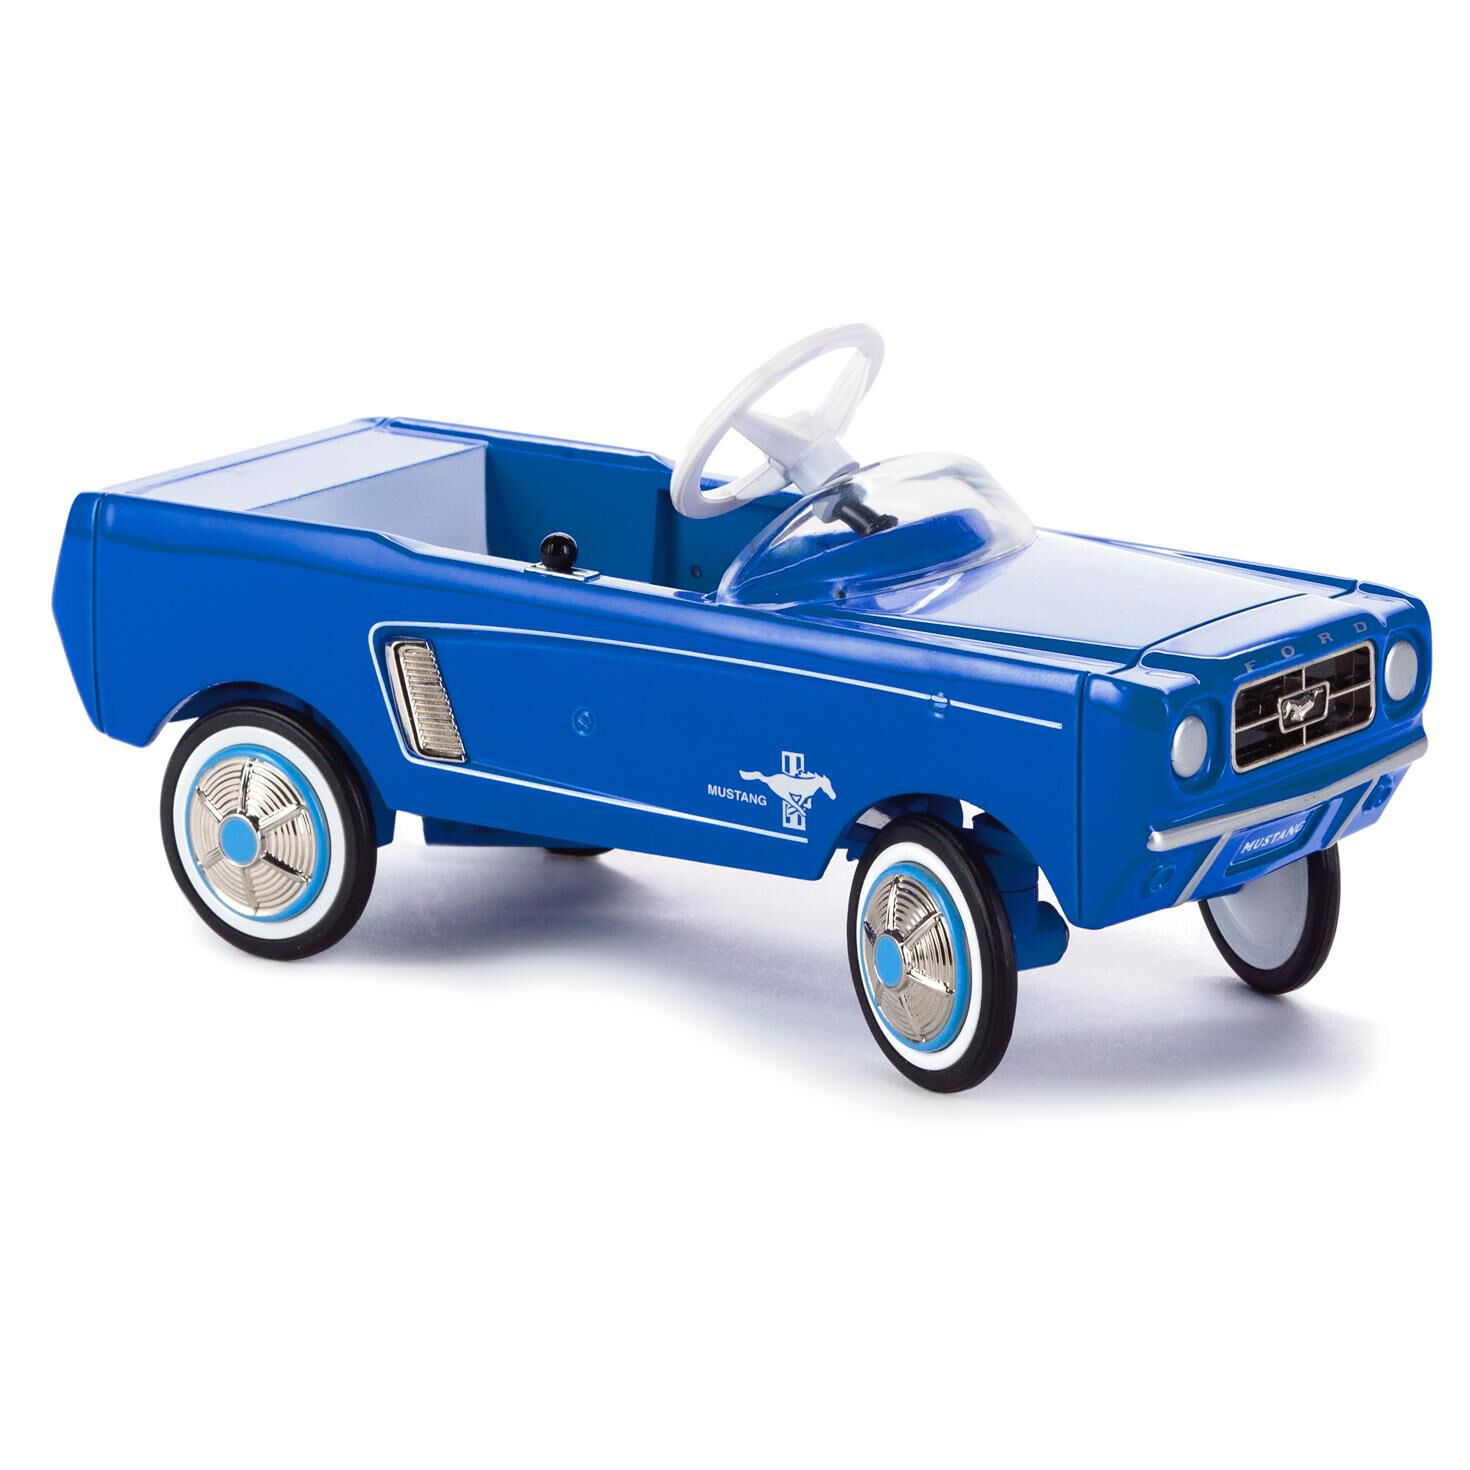 1965 ford mustang kiddie car classics collectible toy car. Black Bedroom Furniture Sets. Home Design Ideas